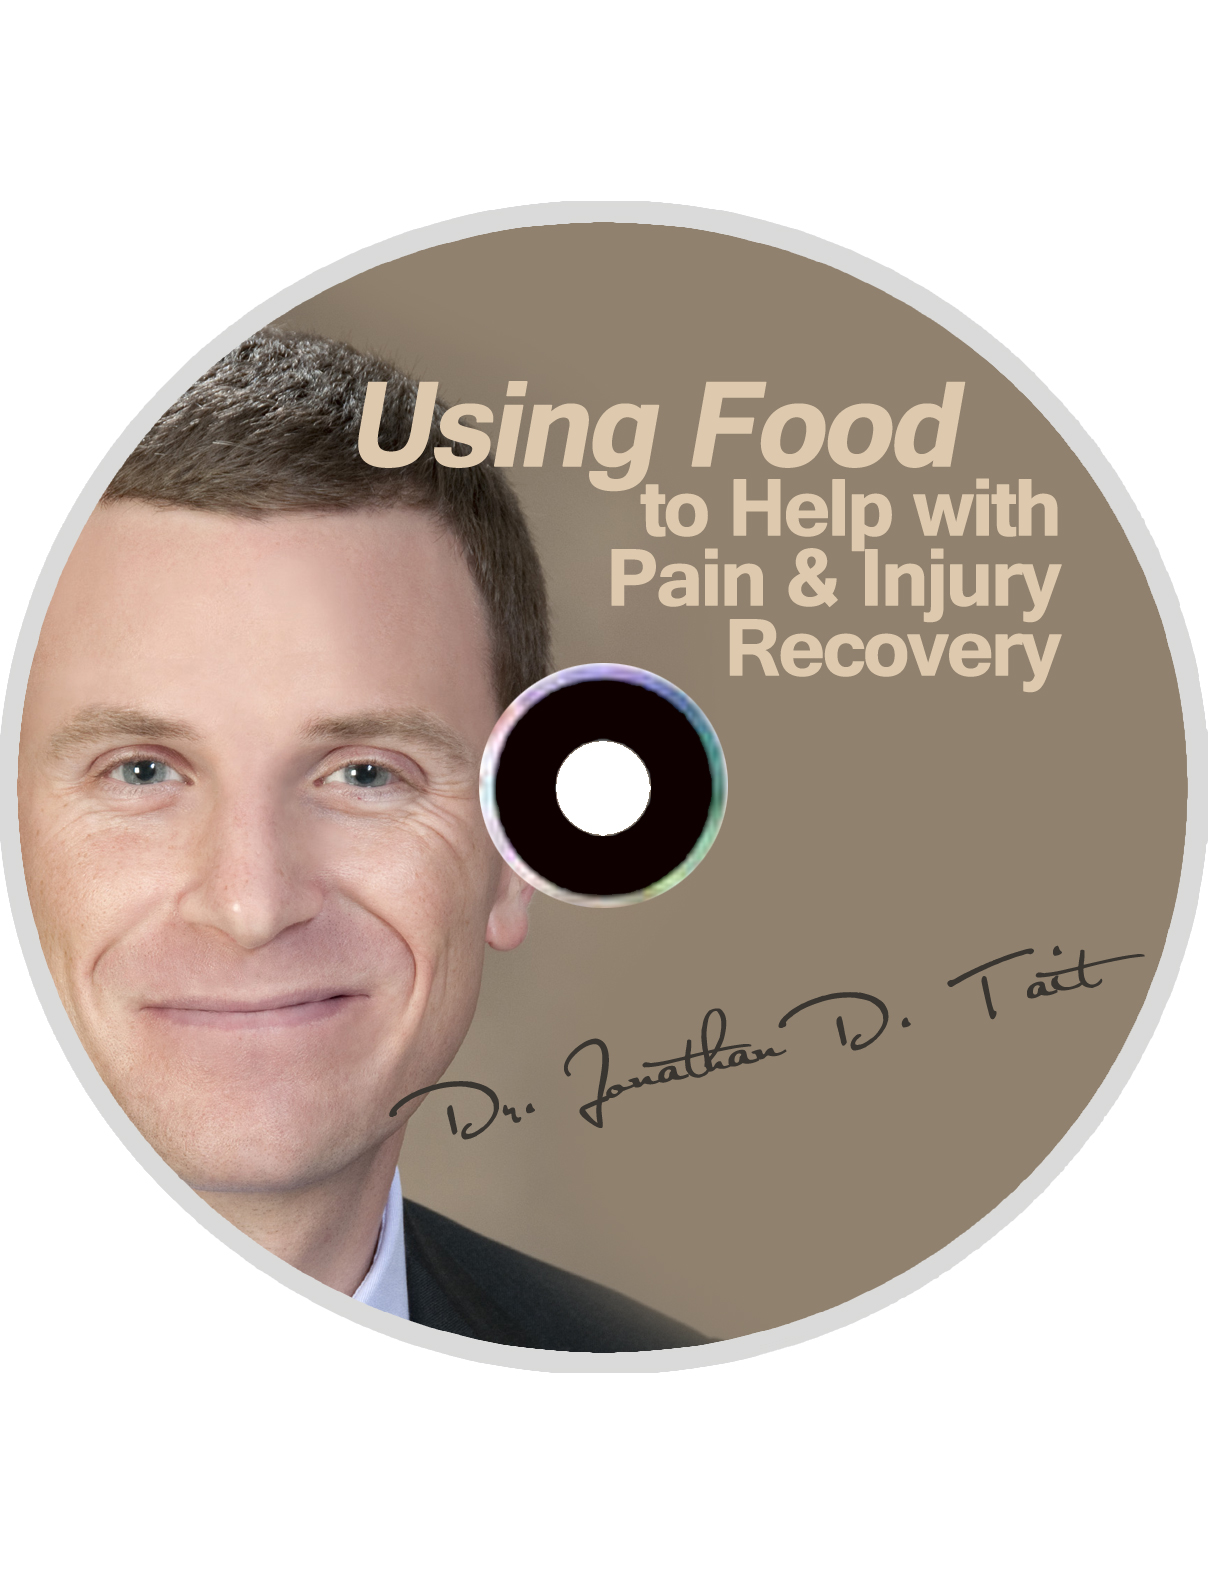 Dr-Jonathan-D-Tait-on-Using-Food-to-Help-with-Pain-and-Injury-Recovery